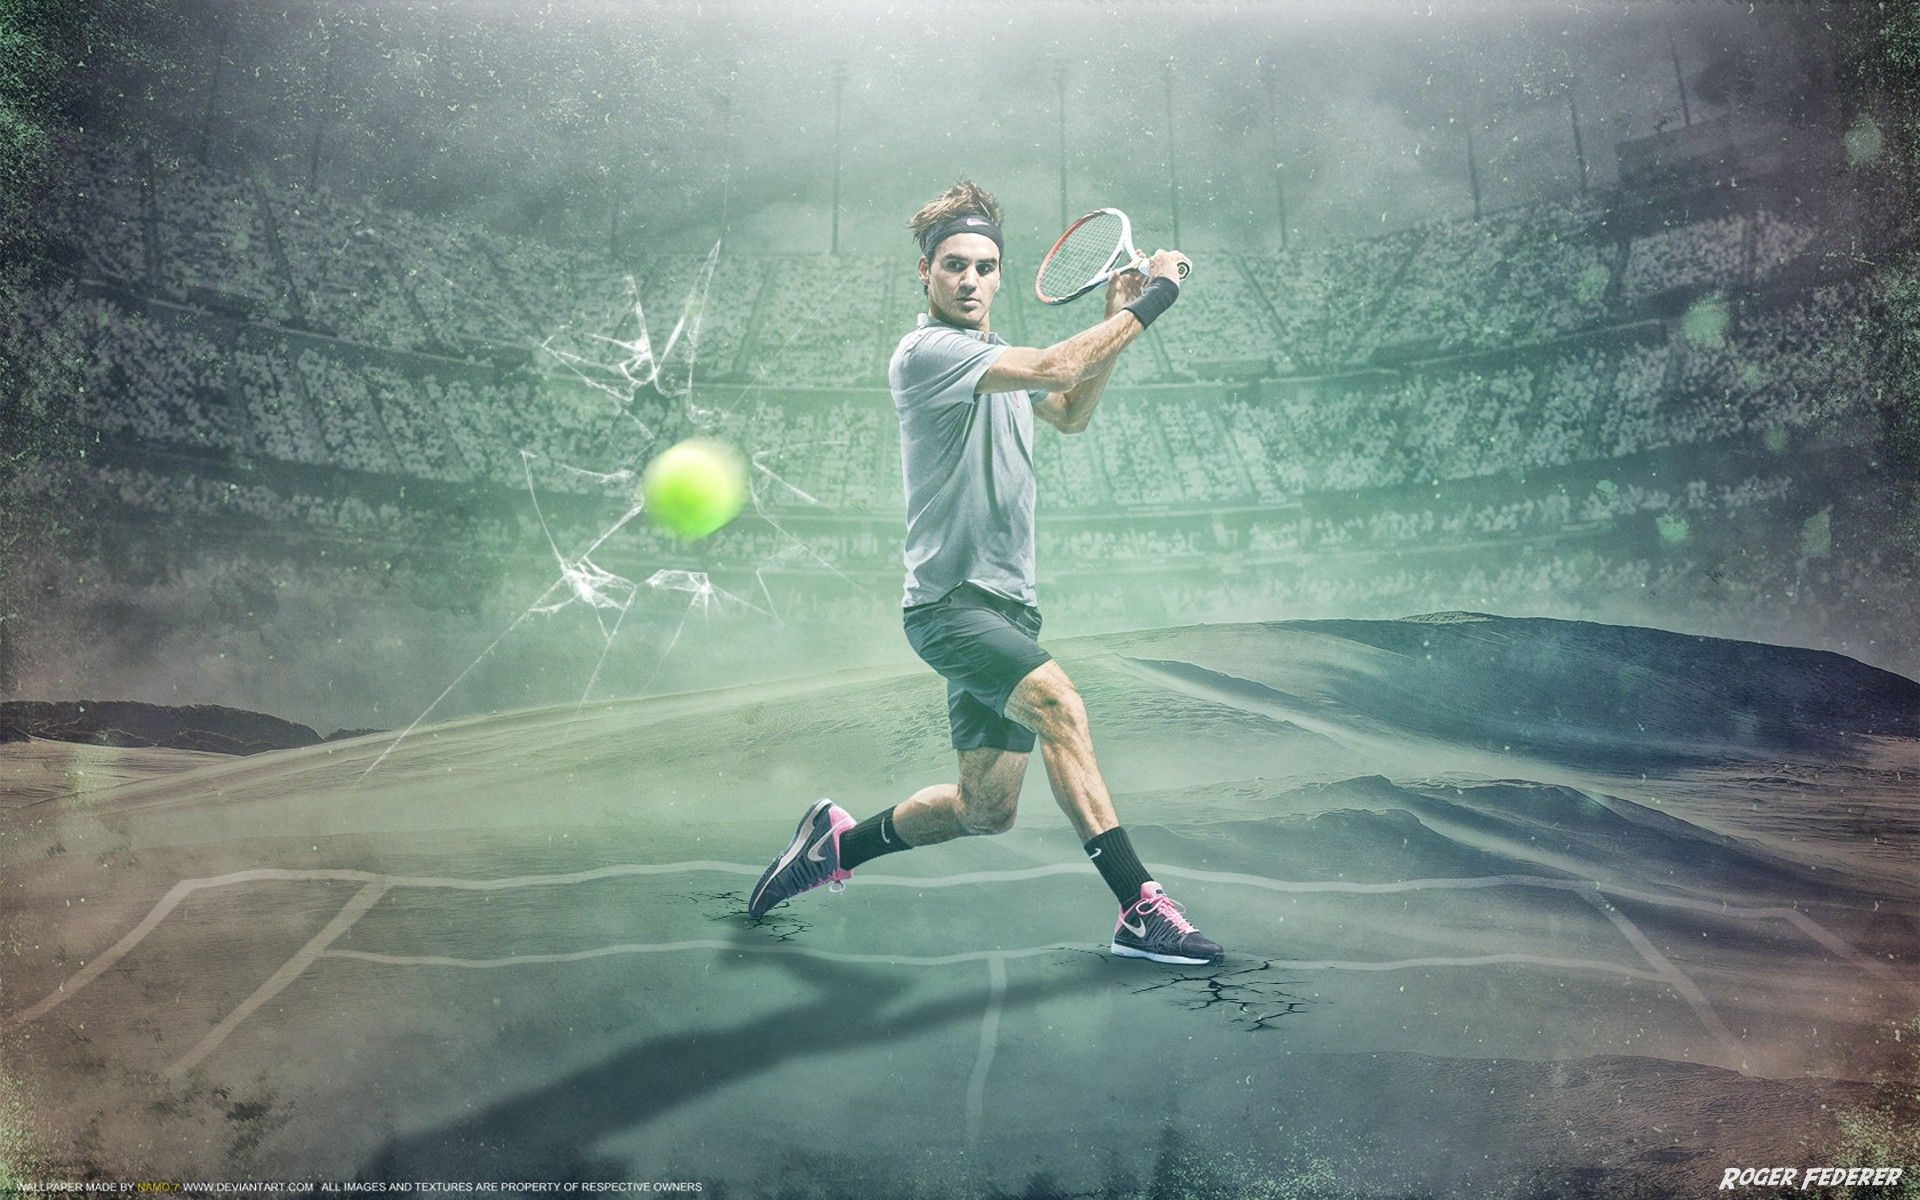 Roger Federer Tennis Player Stylish Image Wallpaper Best HD